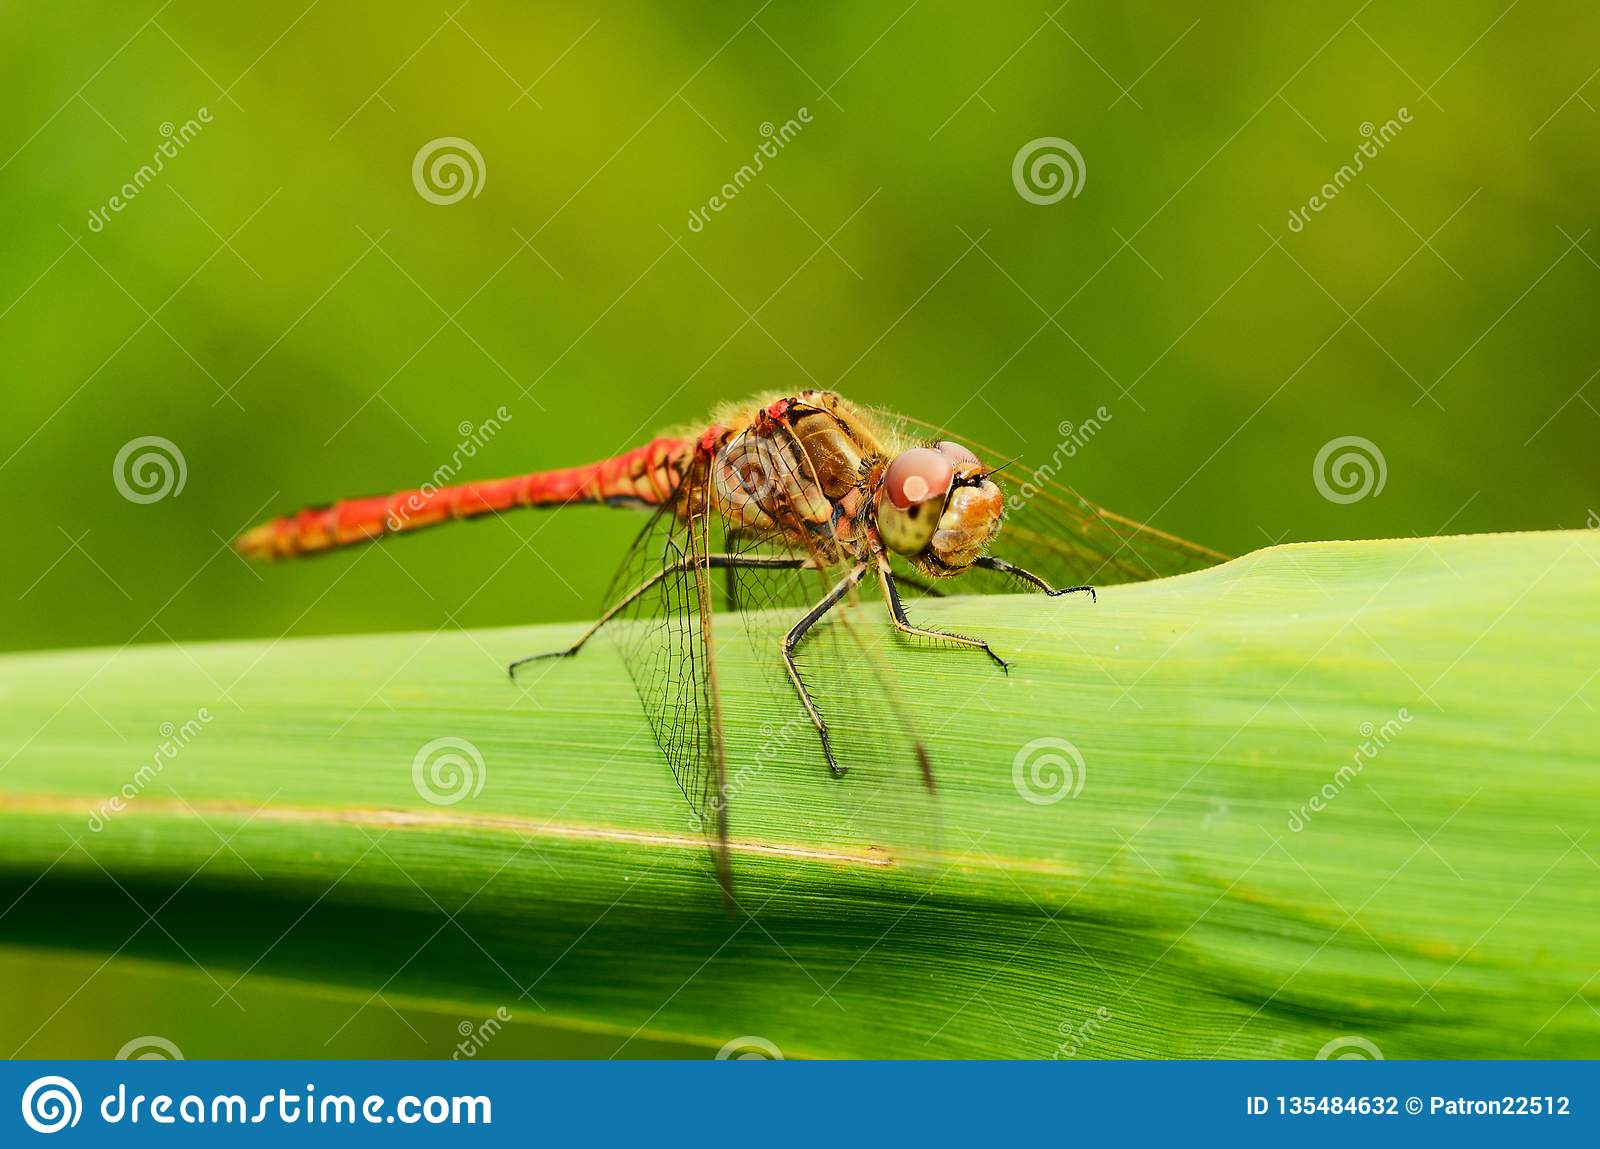 Dragonfly is an insect living near water bodies